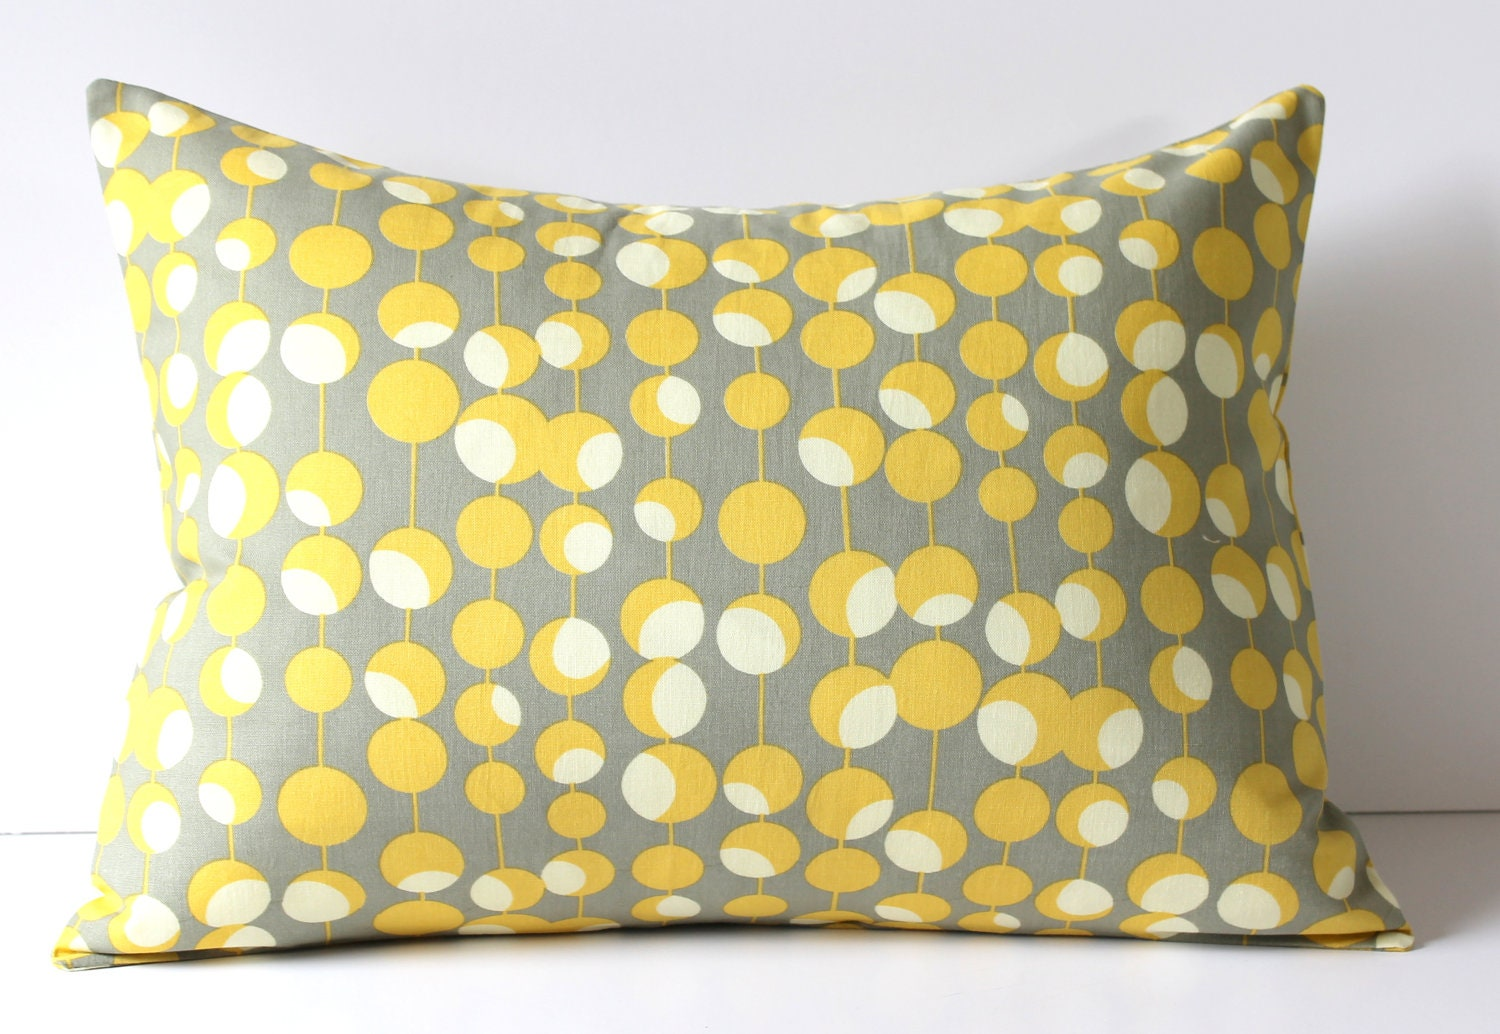 Decorative Pillow Cover Gray & Mustard Yellow by SewGracious